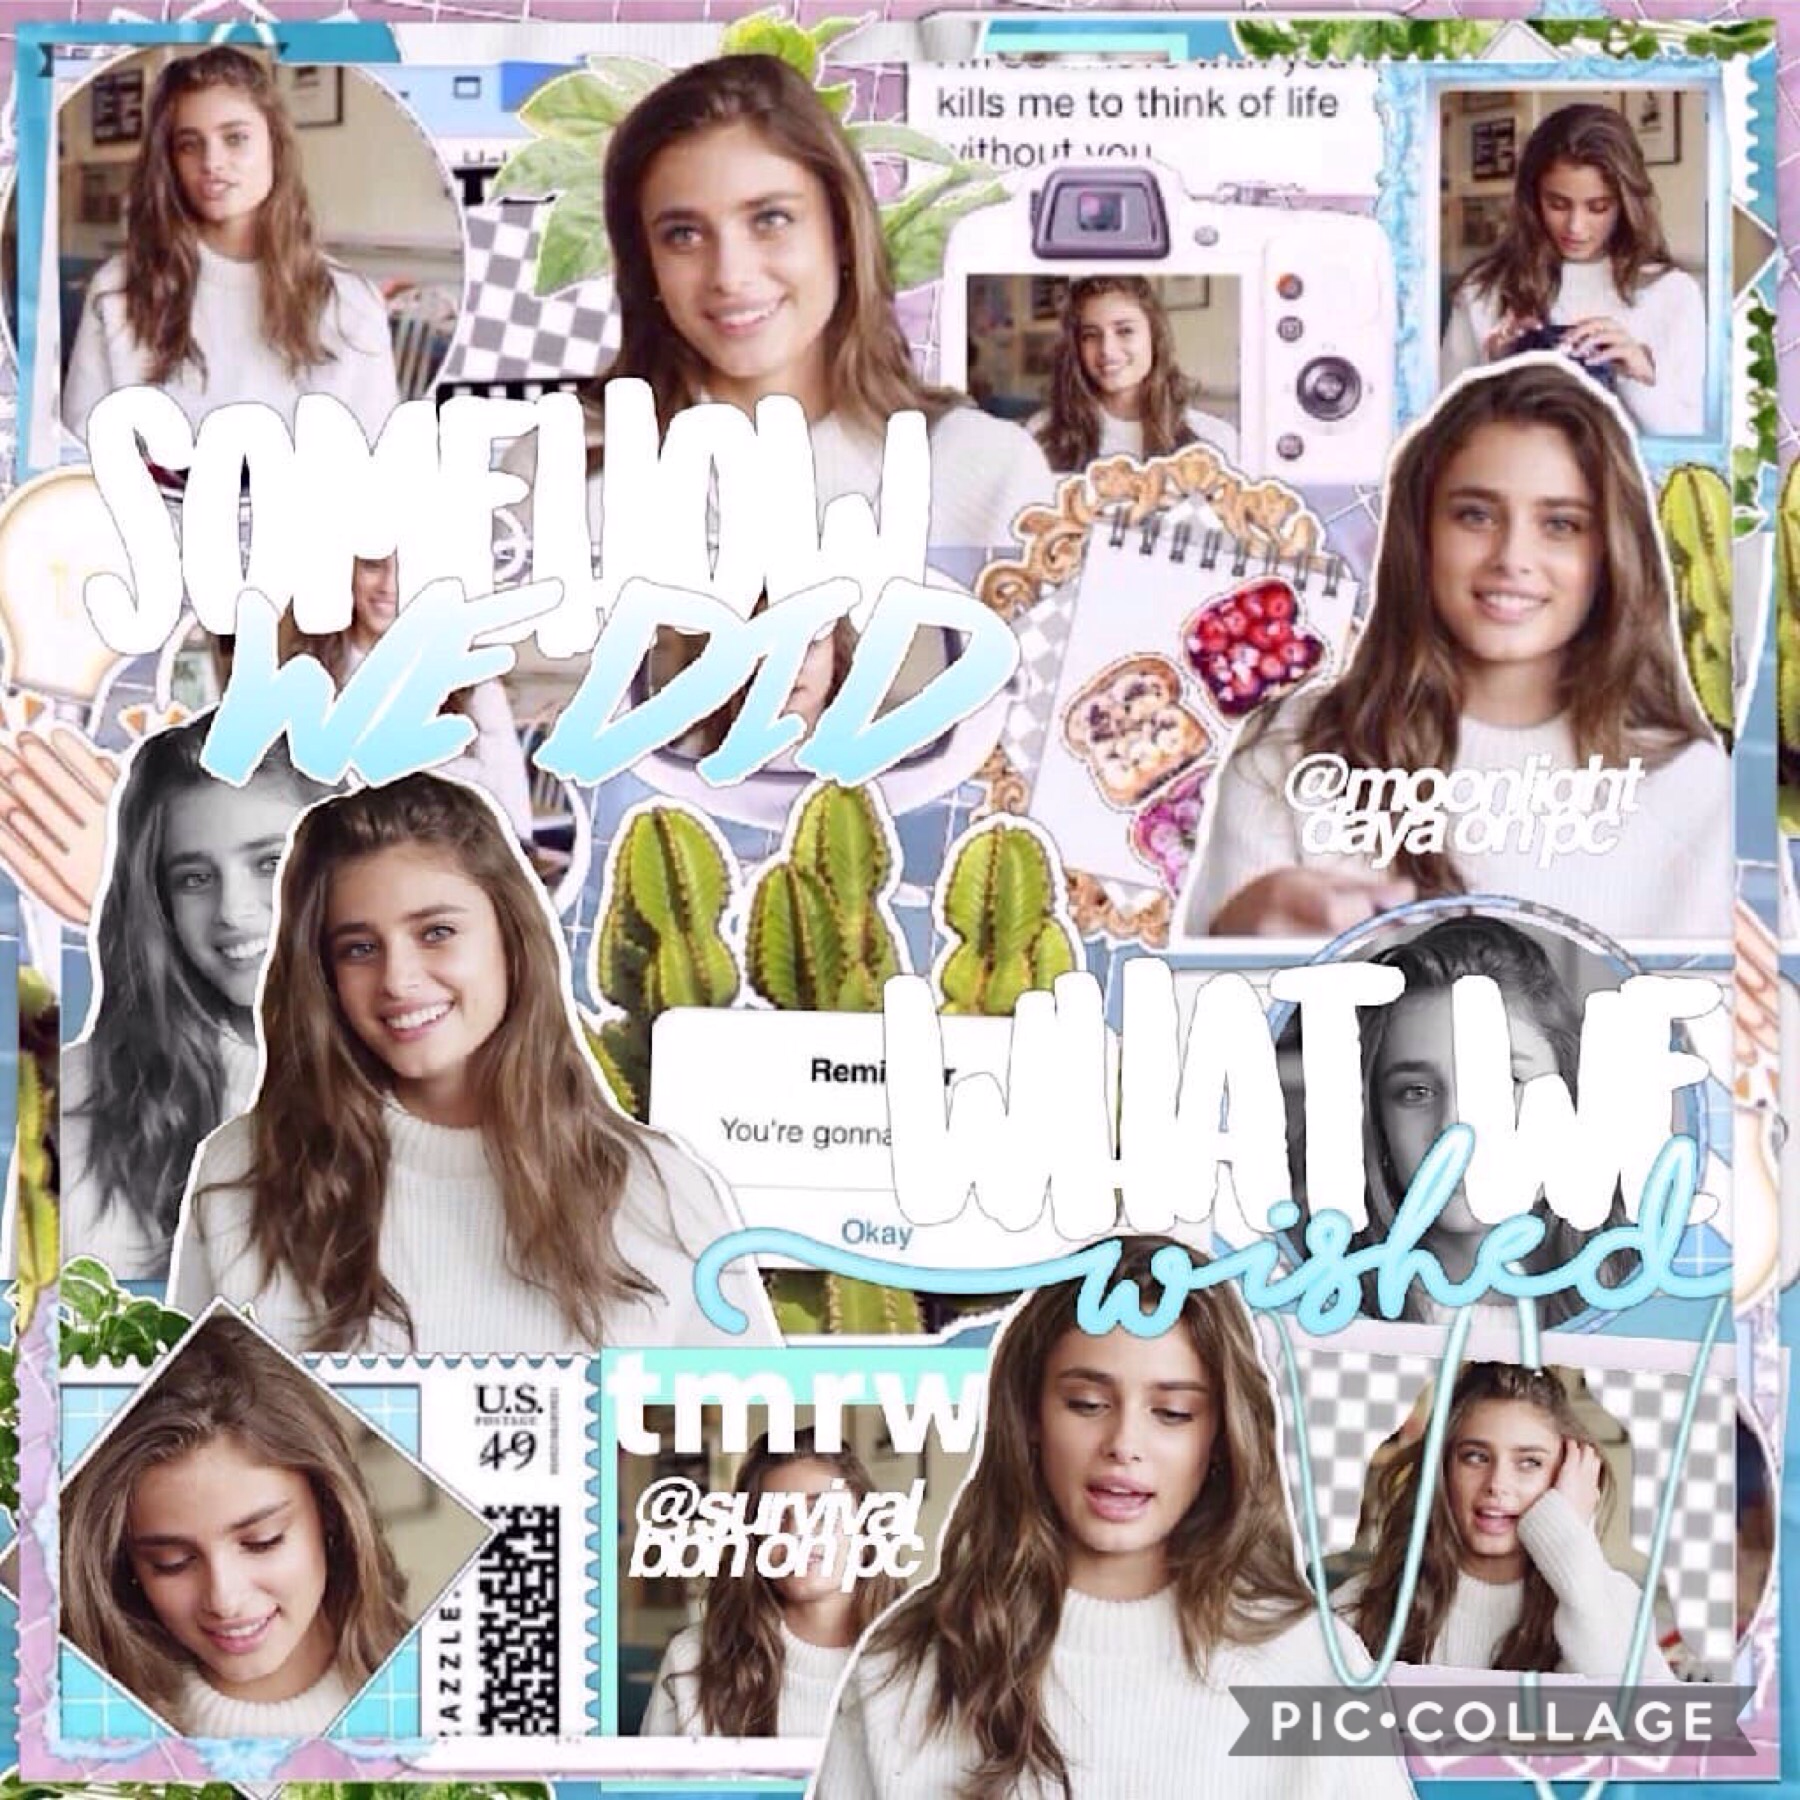 collab with #marsey!!😇👏🏻 omg i'm so happy about this one!💖 It came out so good🌊I always love collabing with you girll💘